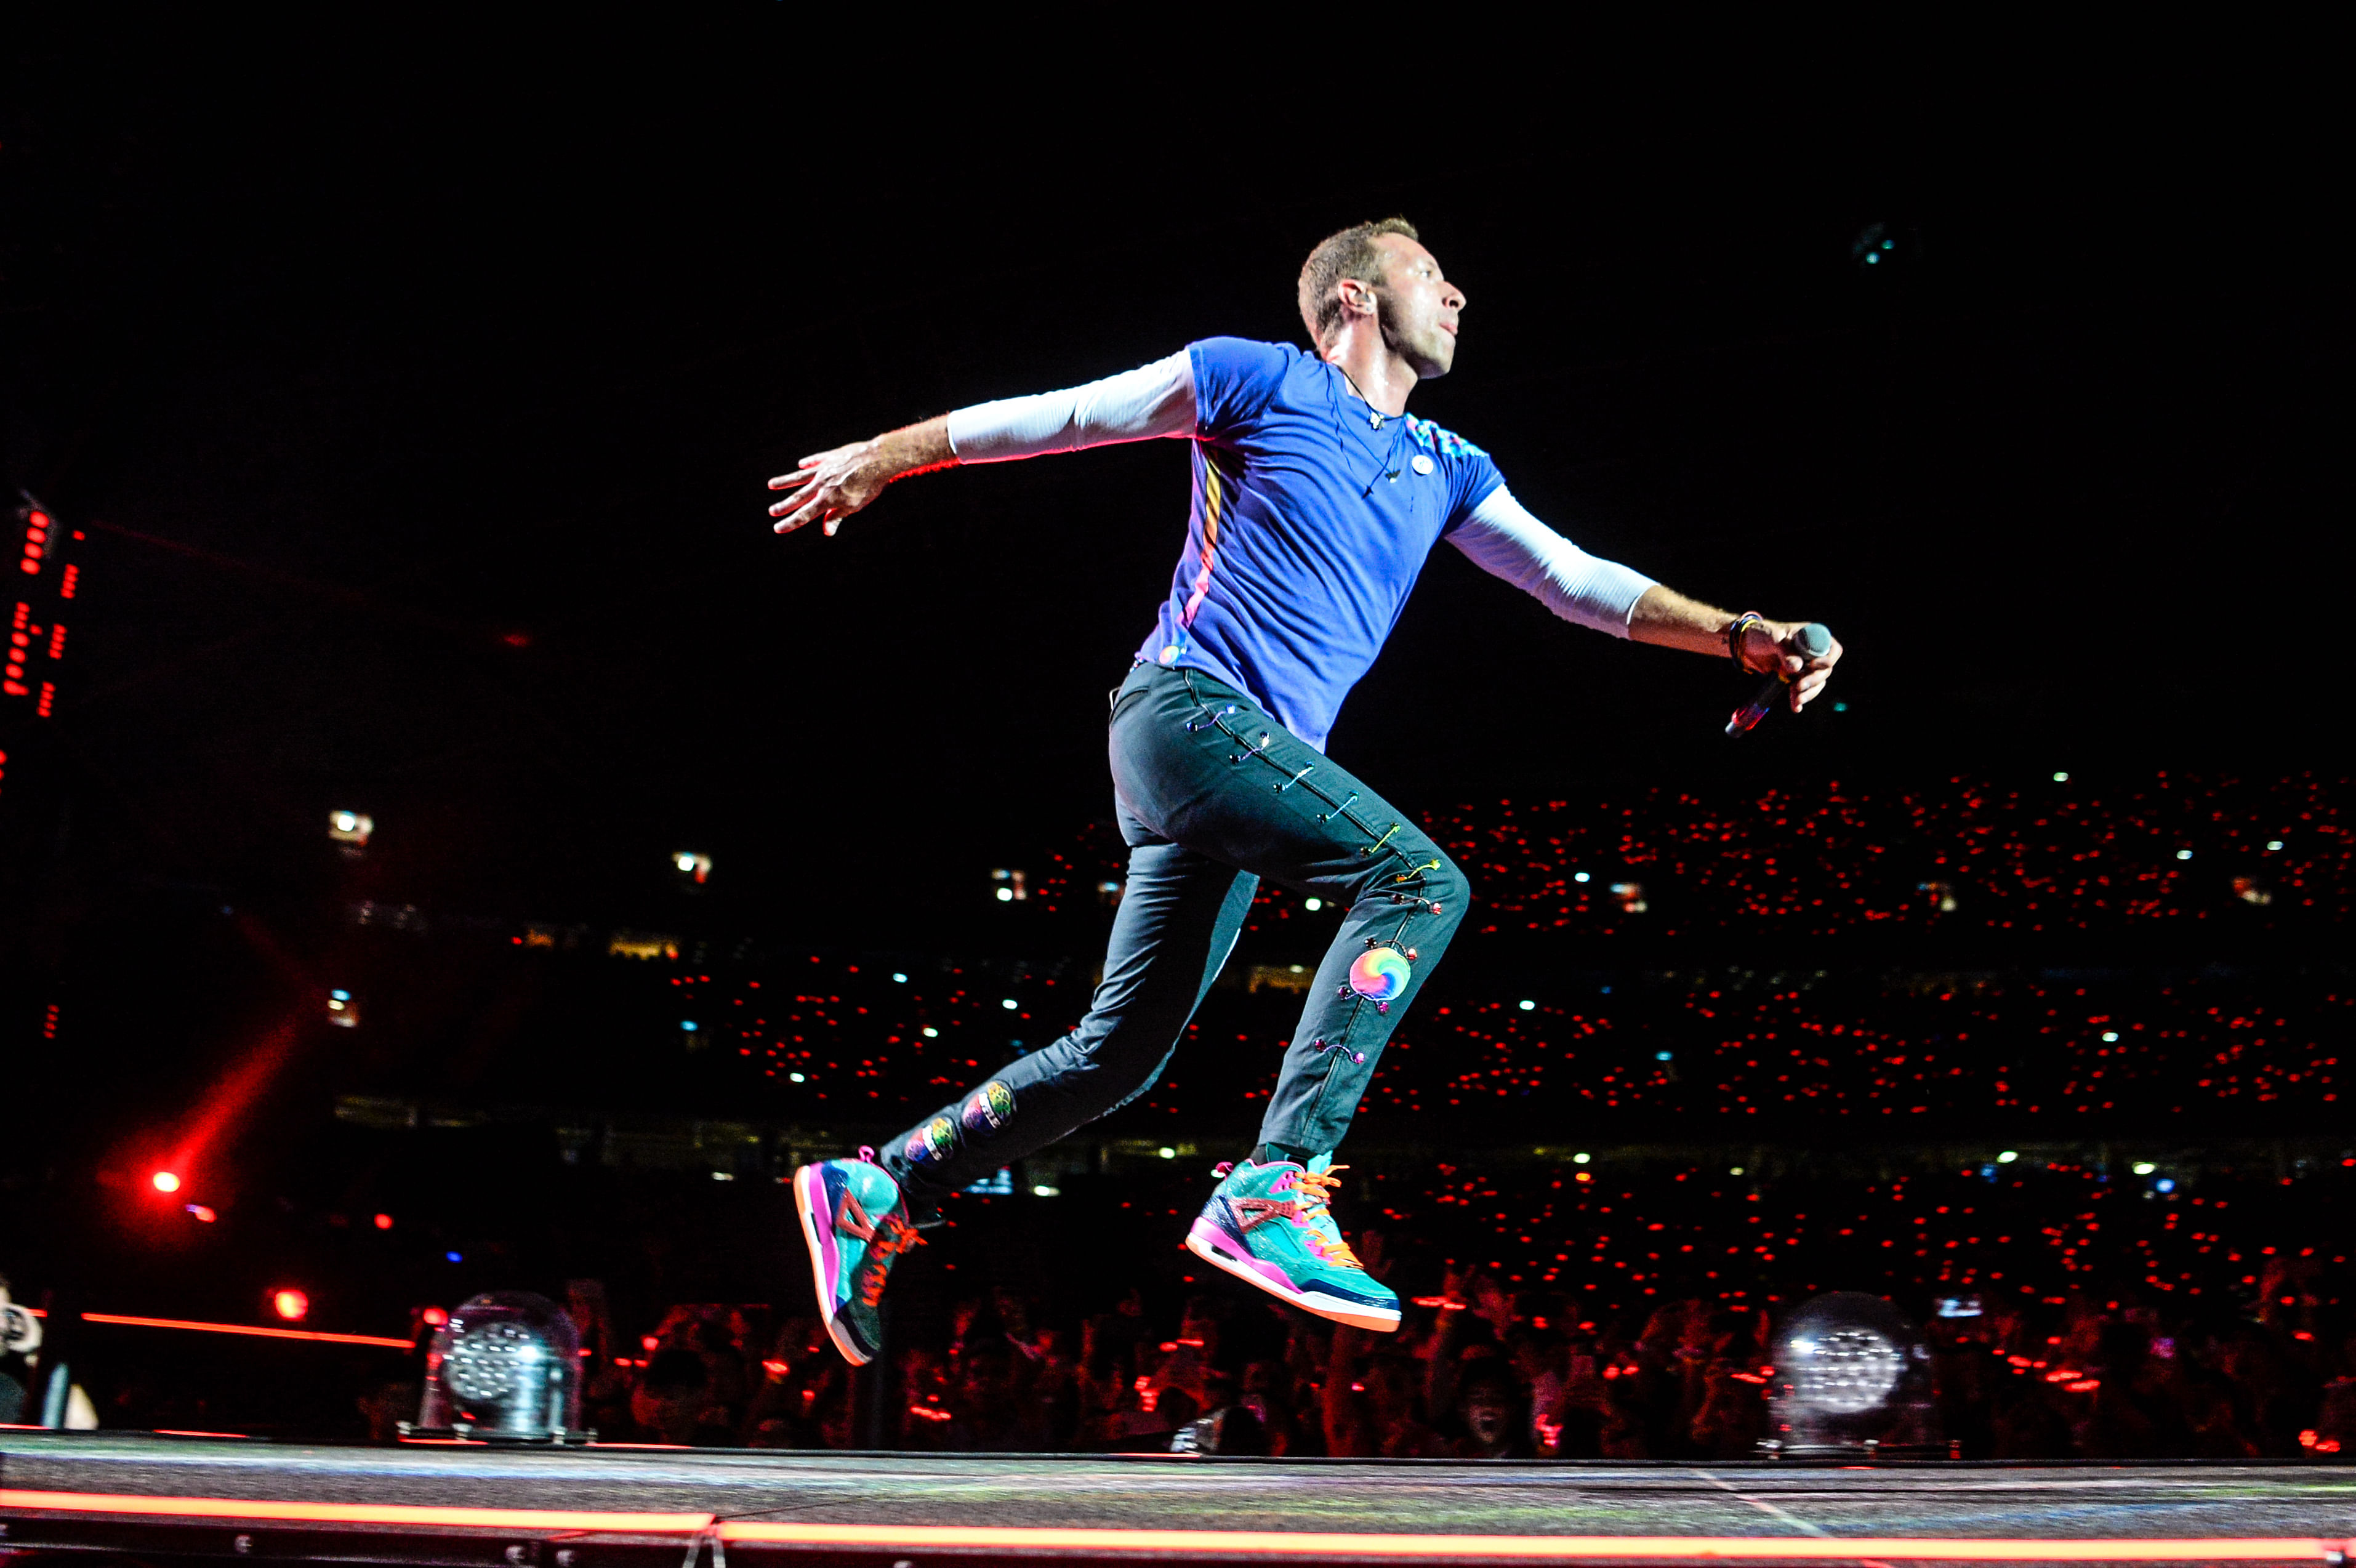 Chris Martin's response to Coldplay concert tickets selling like